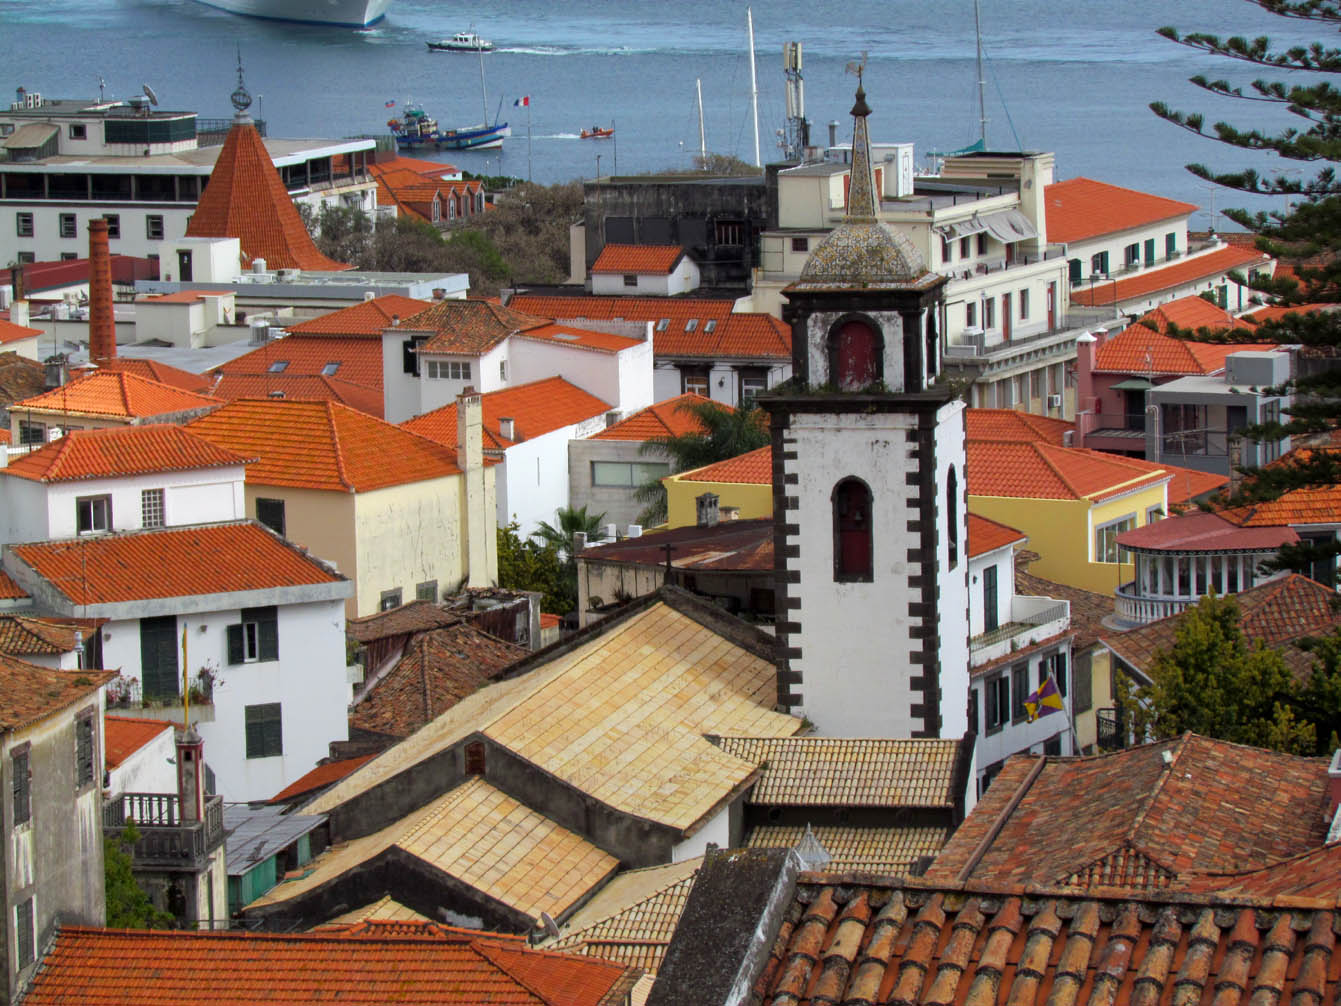 different perspectives of the São Pedro church